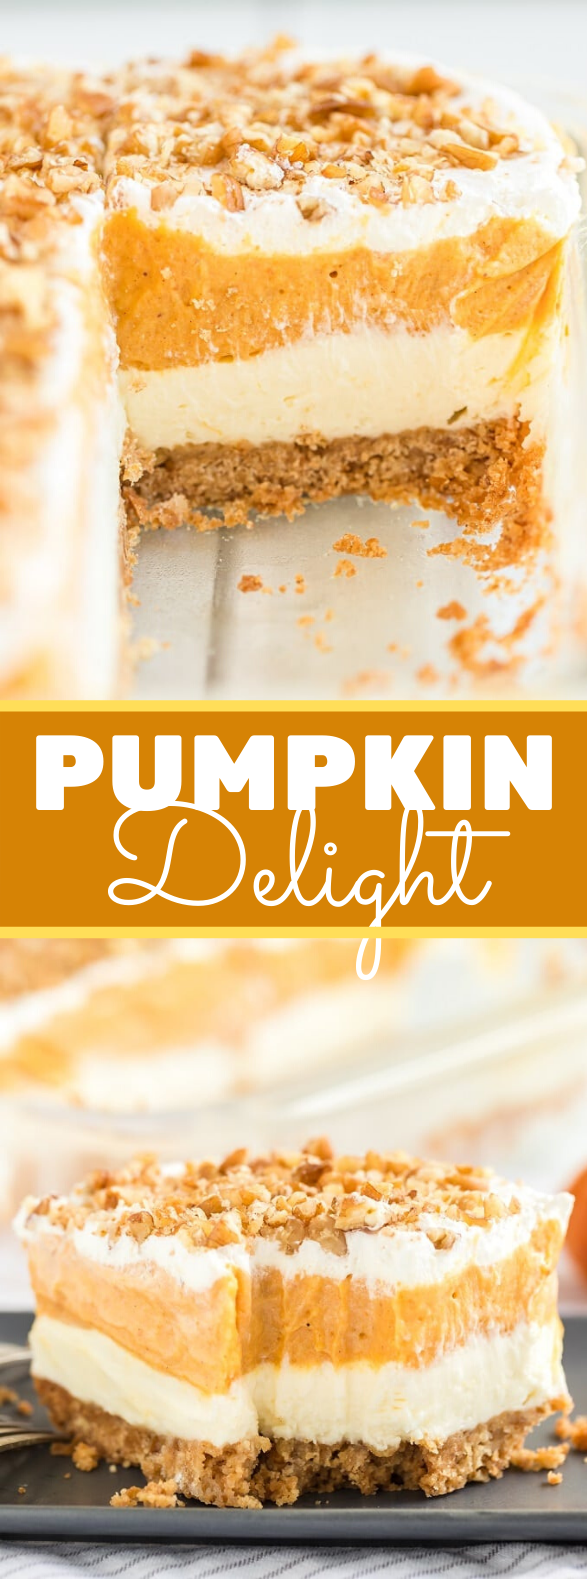 Pumpkin Delight Dessert #cake #thanksgiving